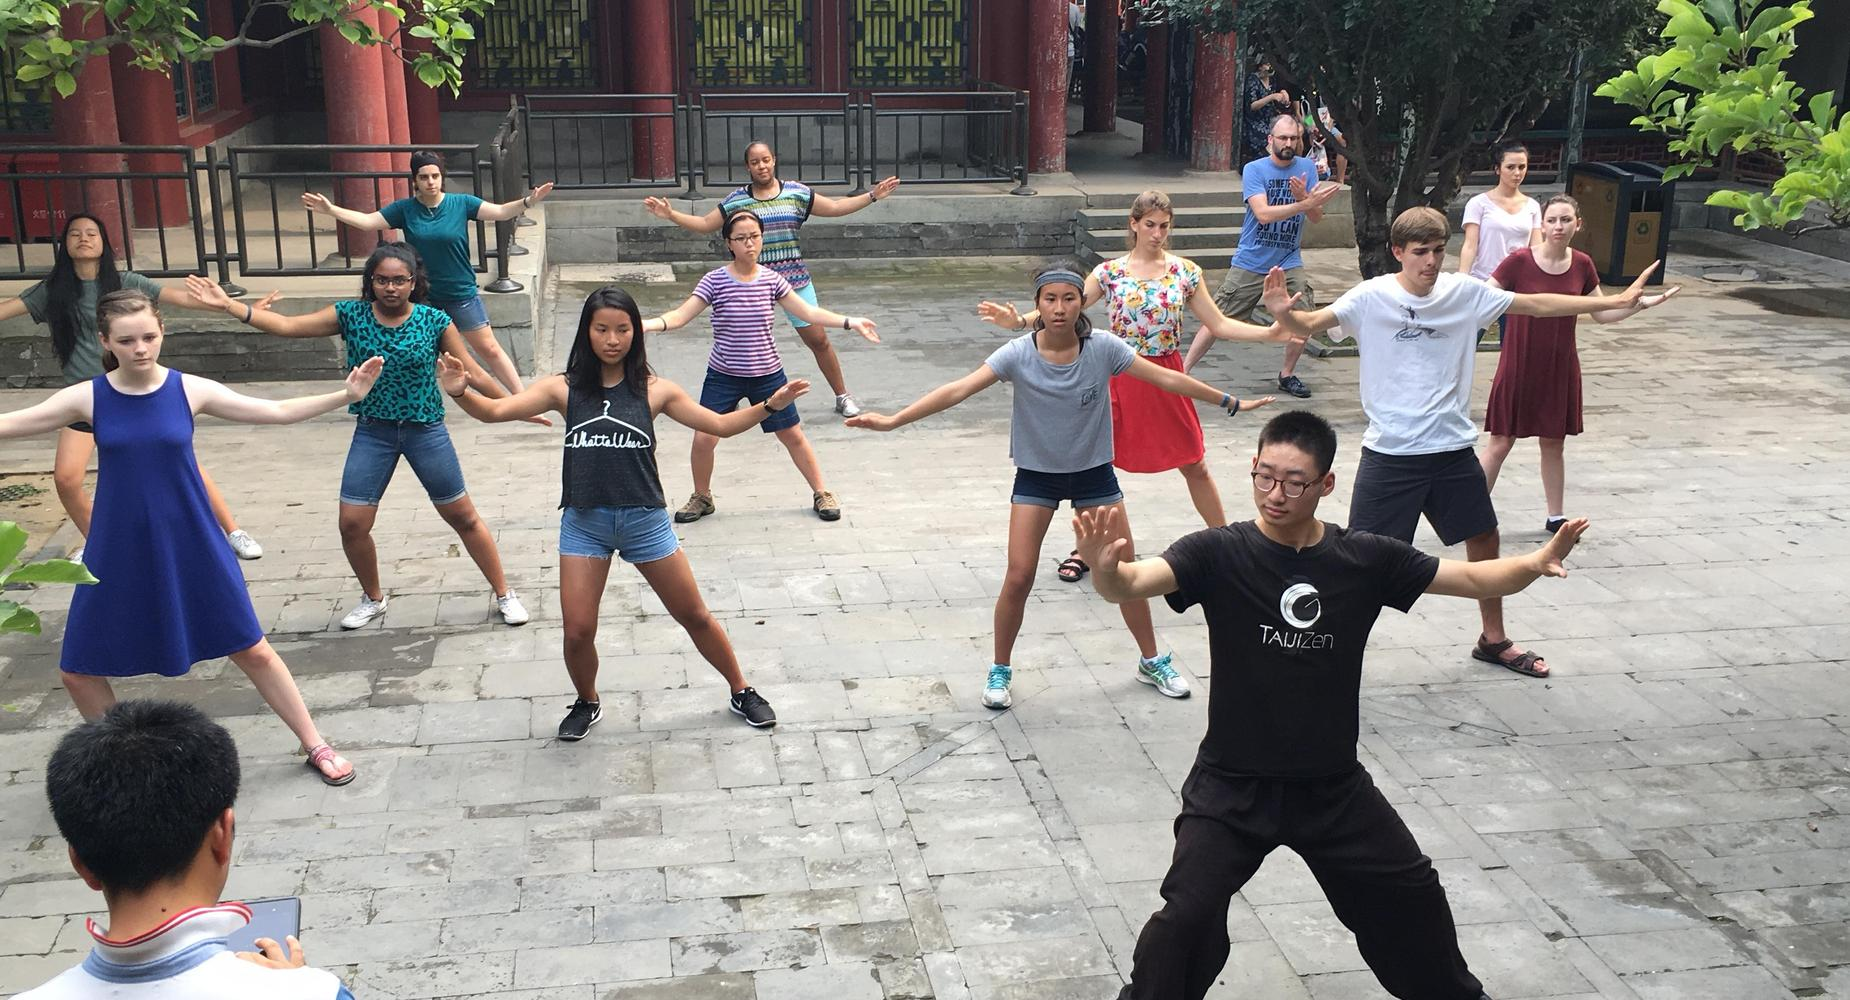 Students in China exercising